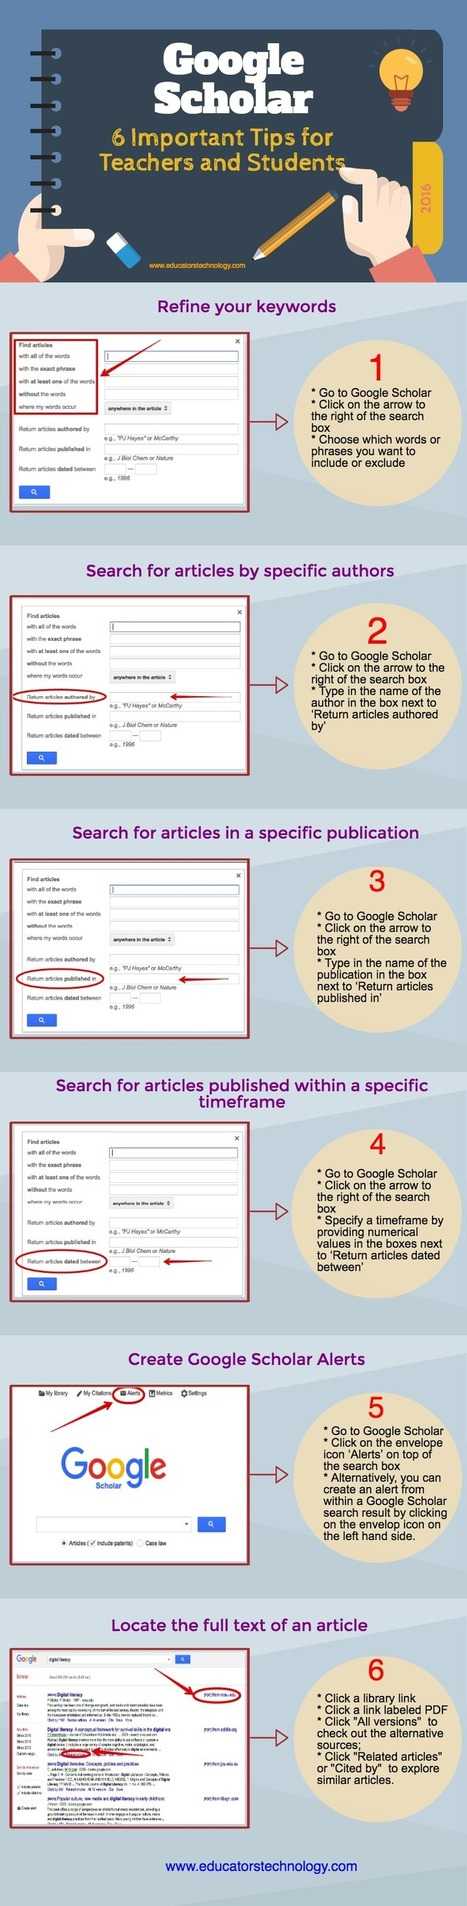 6 Important Google Scholar Tips for Teachers and Students (Poster) ~ Educational Technology and Mobile Learning | School Library Advocacy | Scoop.it